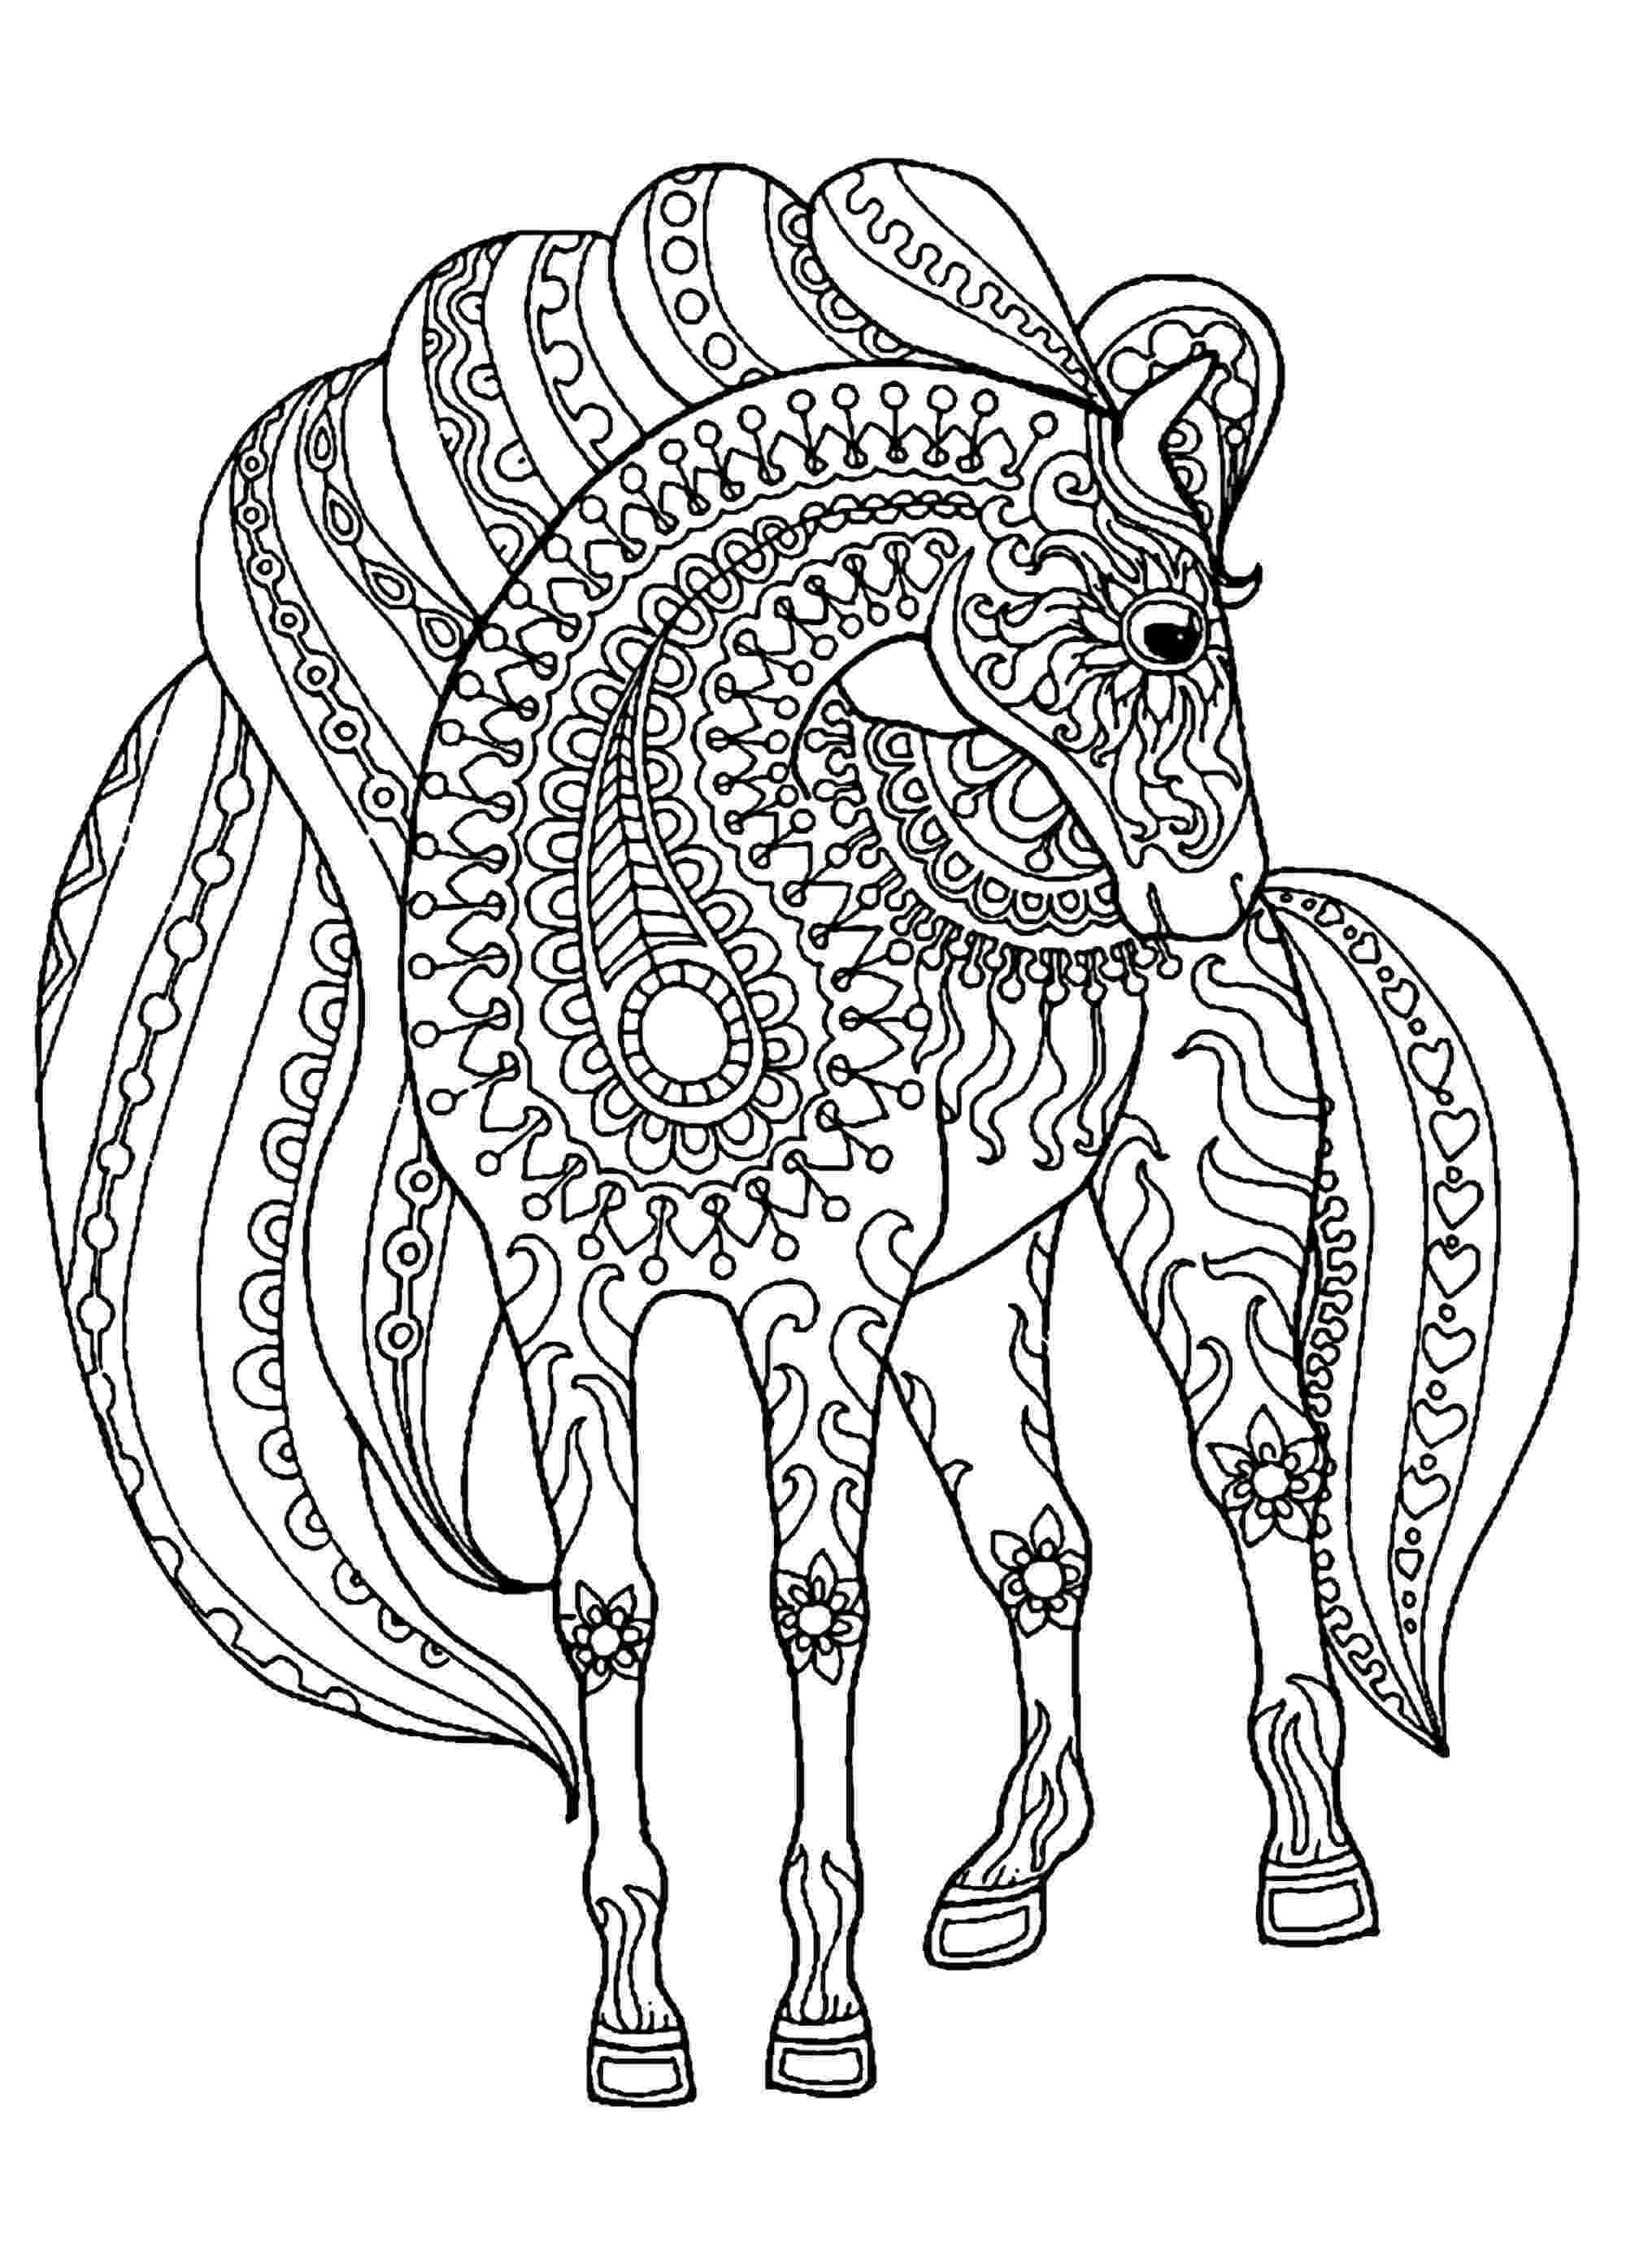 printable horse coloring pages for adults horse coloring pages for adults best coloring pages for kids horse for coloring adults printable pages